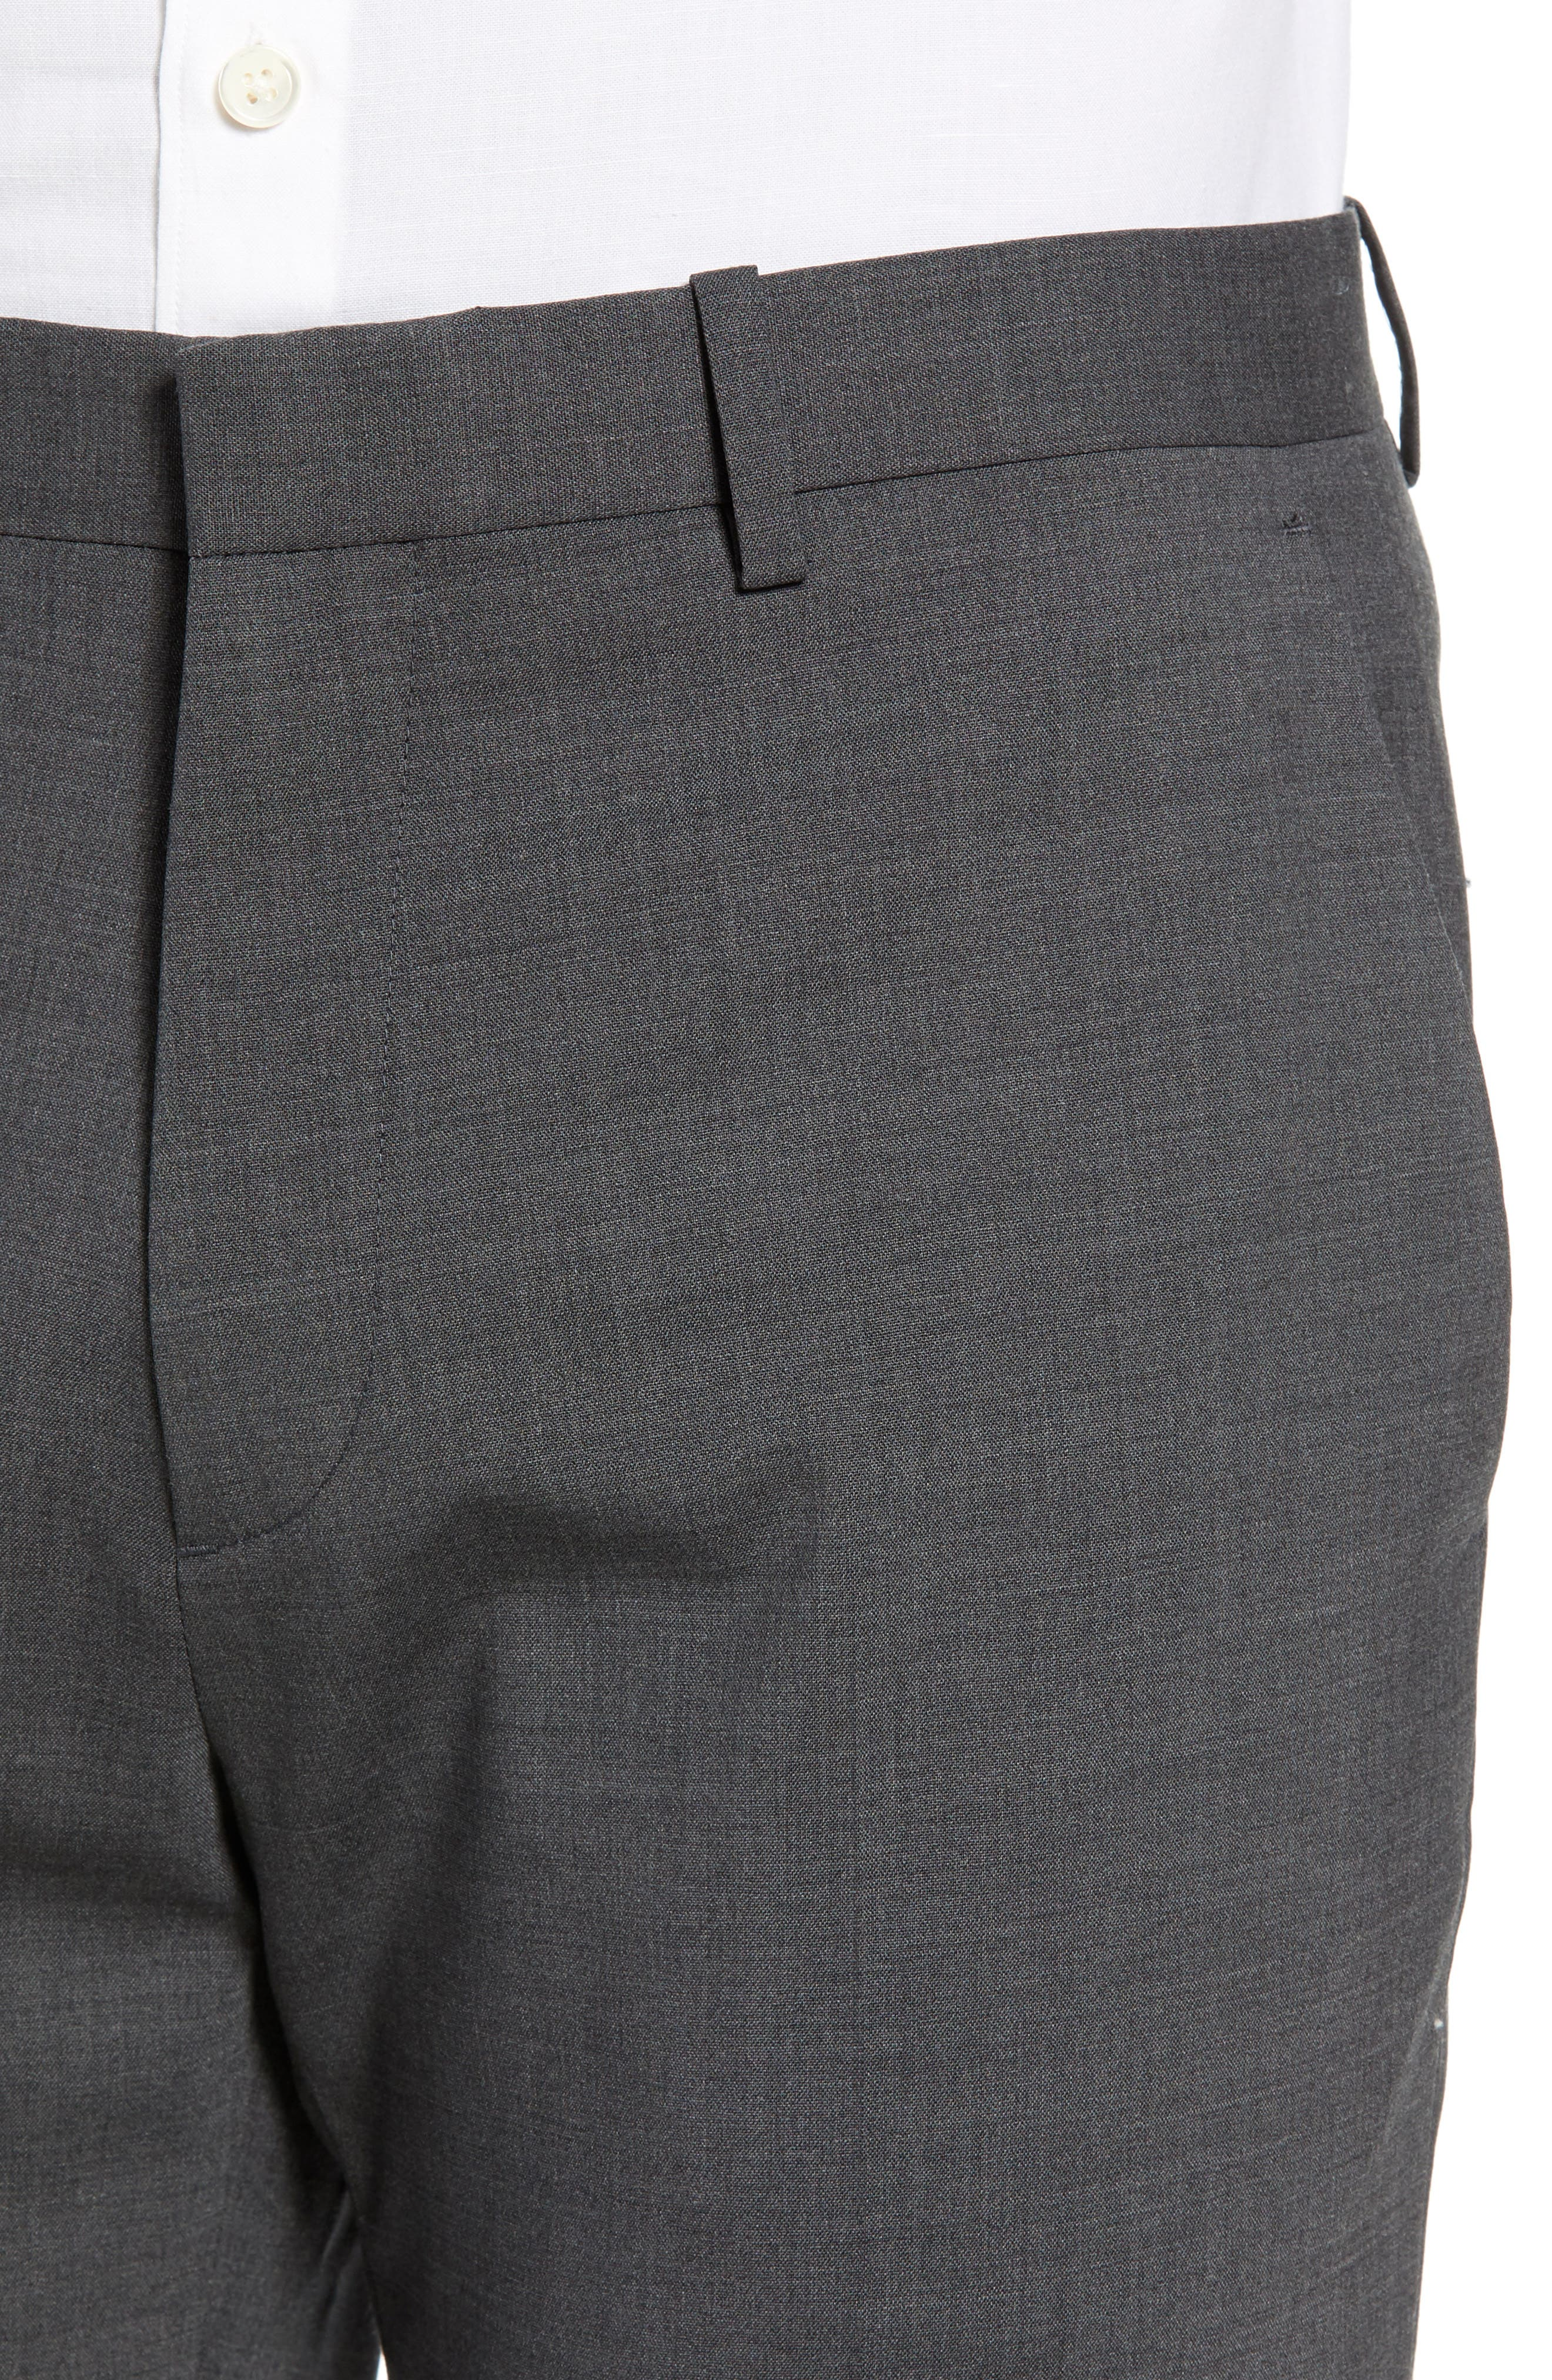 Mayer New Tailor 2 Wool Trousers,                             Alternate thumbnail 4, color,                             CHARCOAL